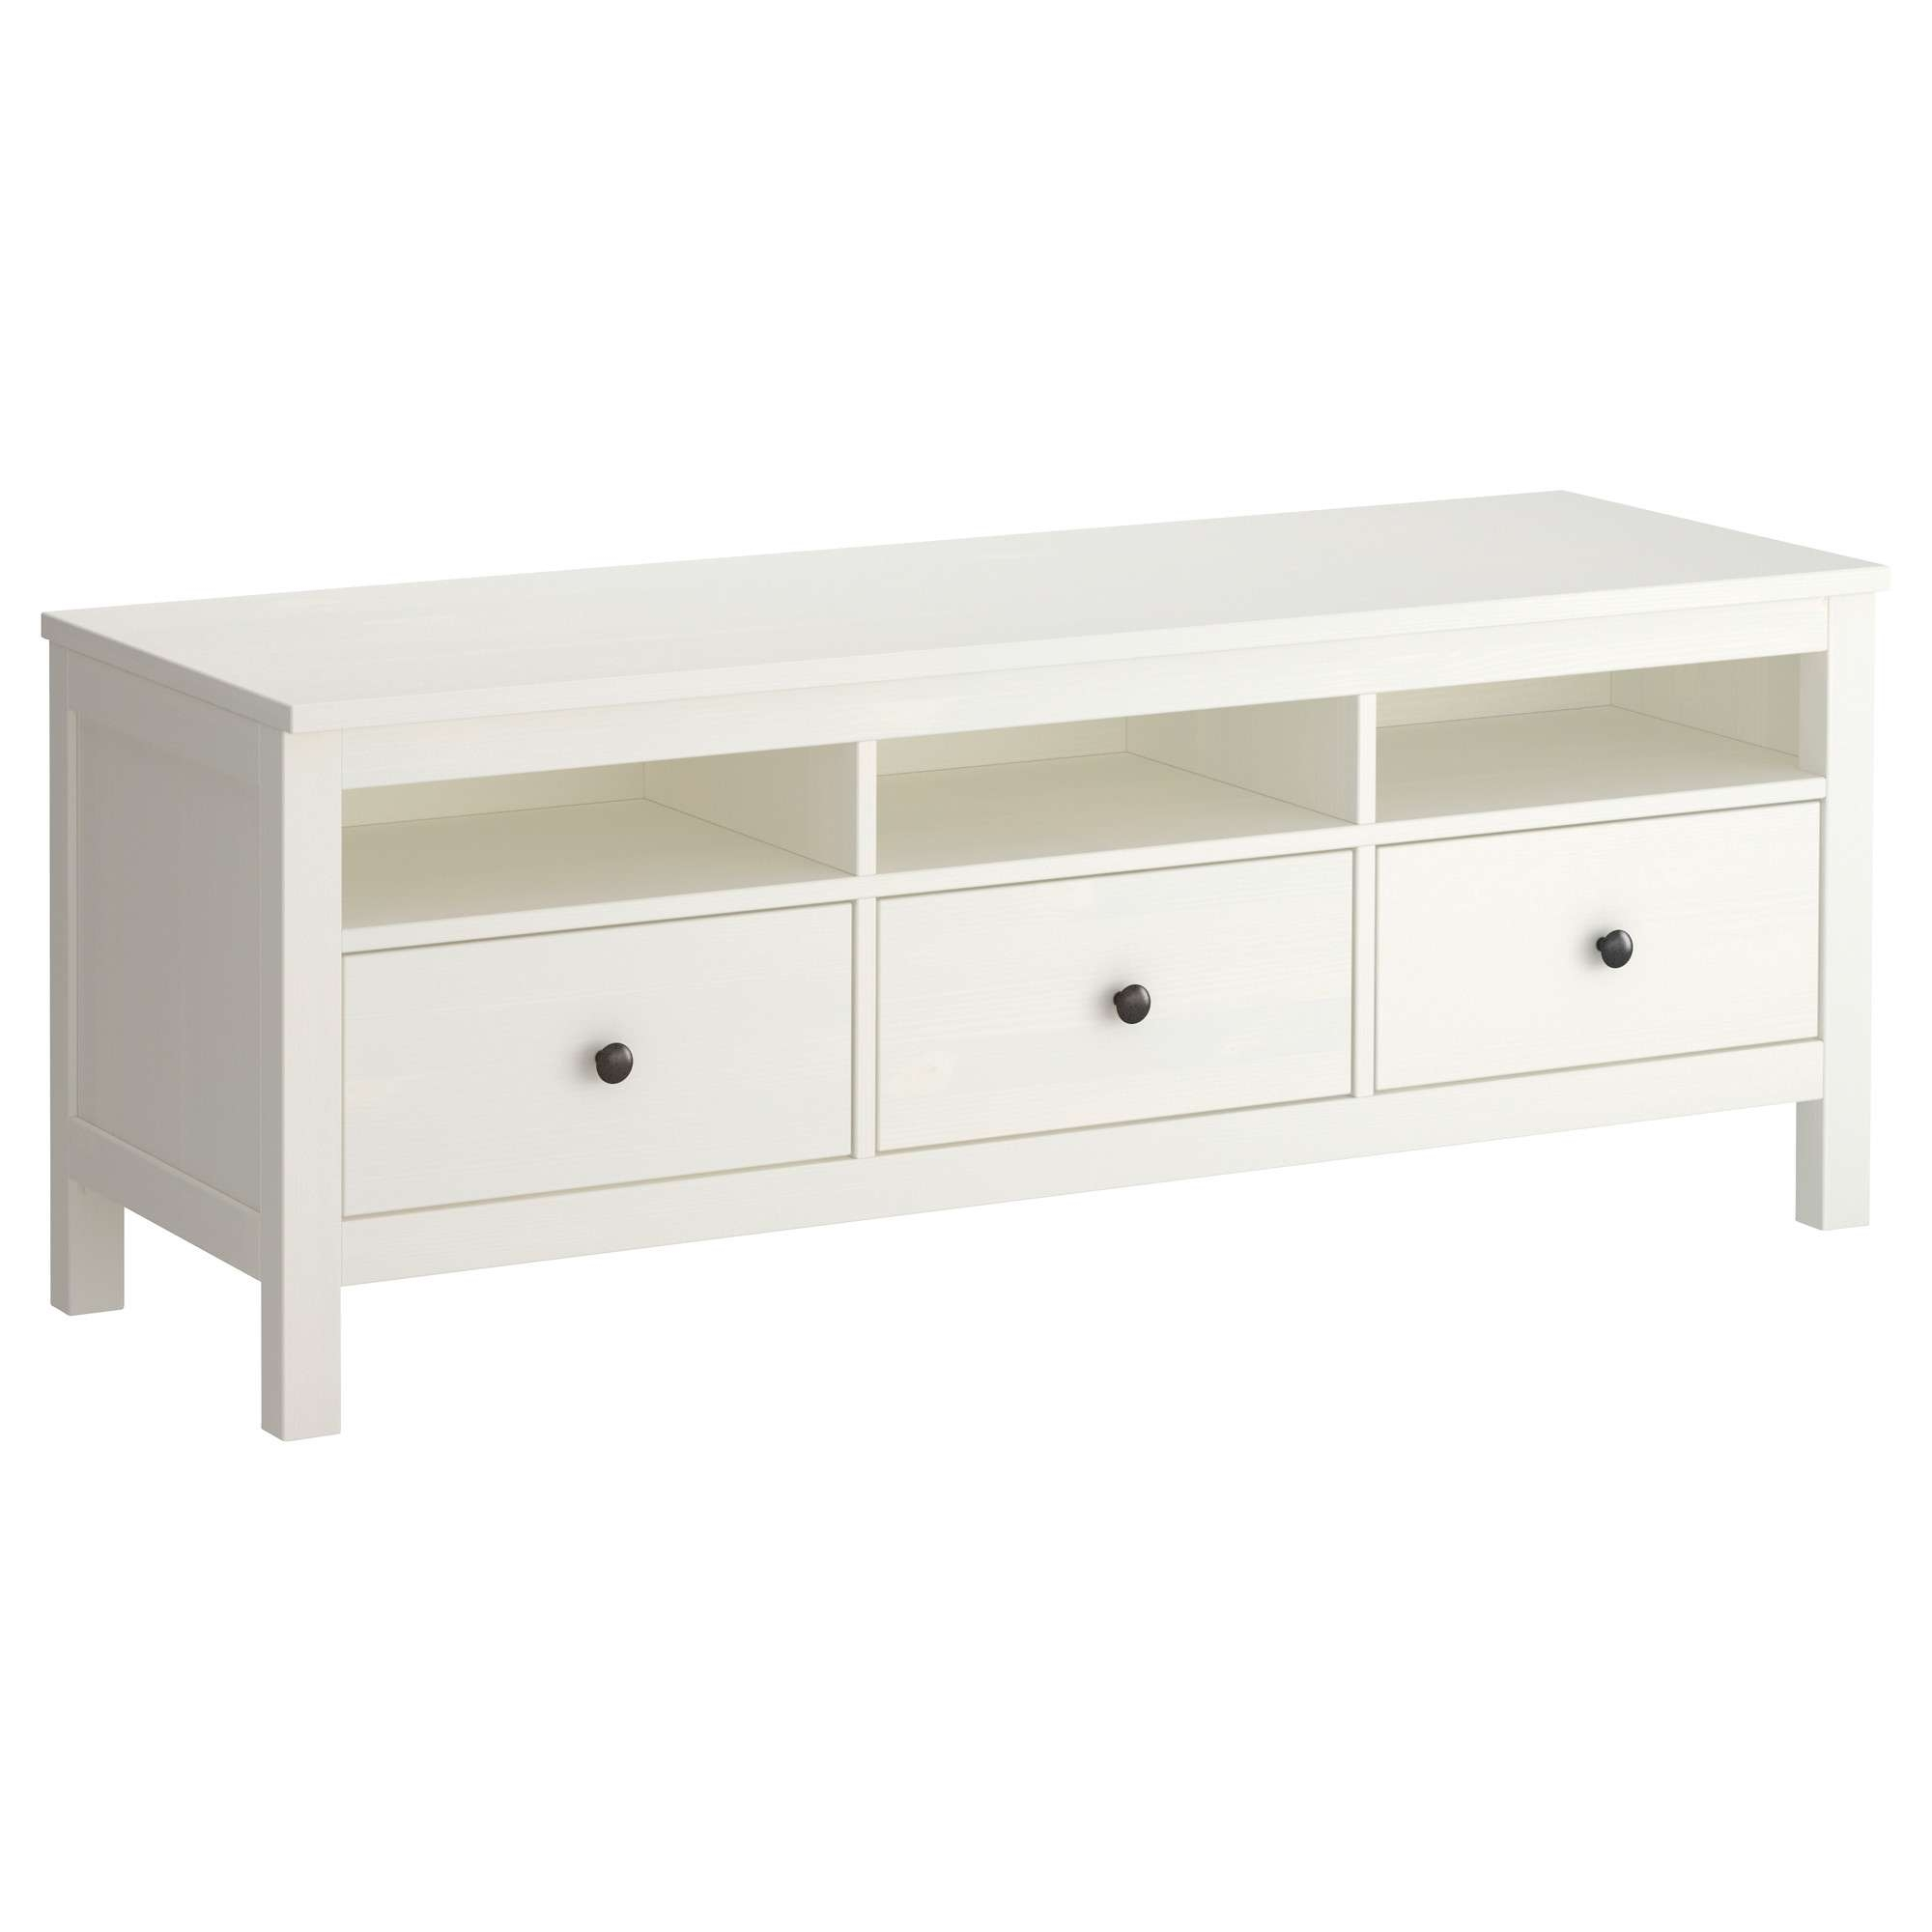 Hemnes Tv Bench White Stain 148X47 Cm – Ikea For White Wood Tv Stands (View 4 of 15)